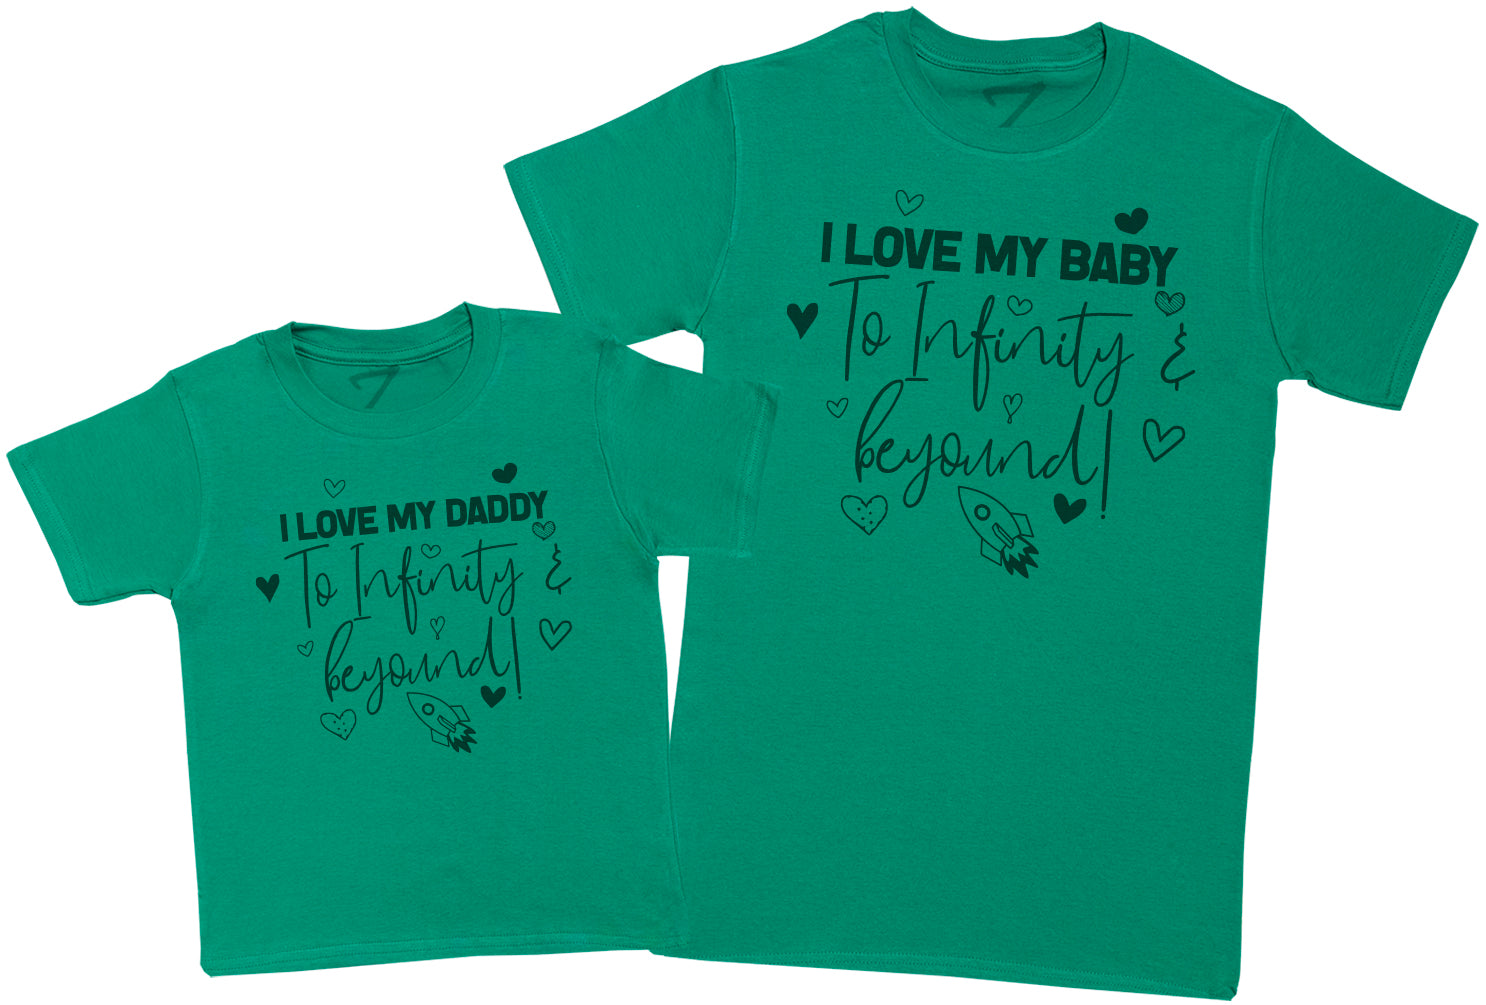 I Love My Daddy & Baby To Infinity & Beyond - Mens T Shirt & Kid's T-Shirt